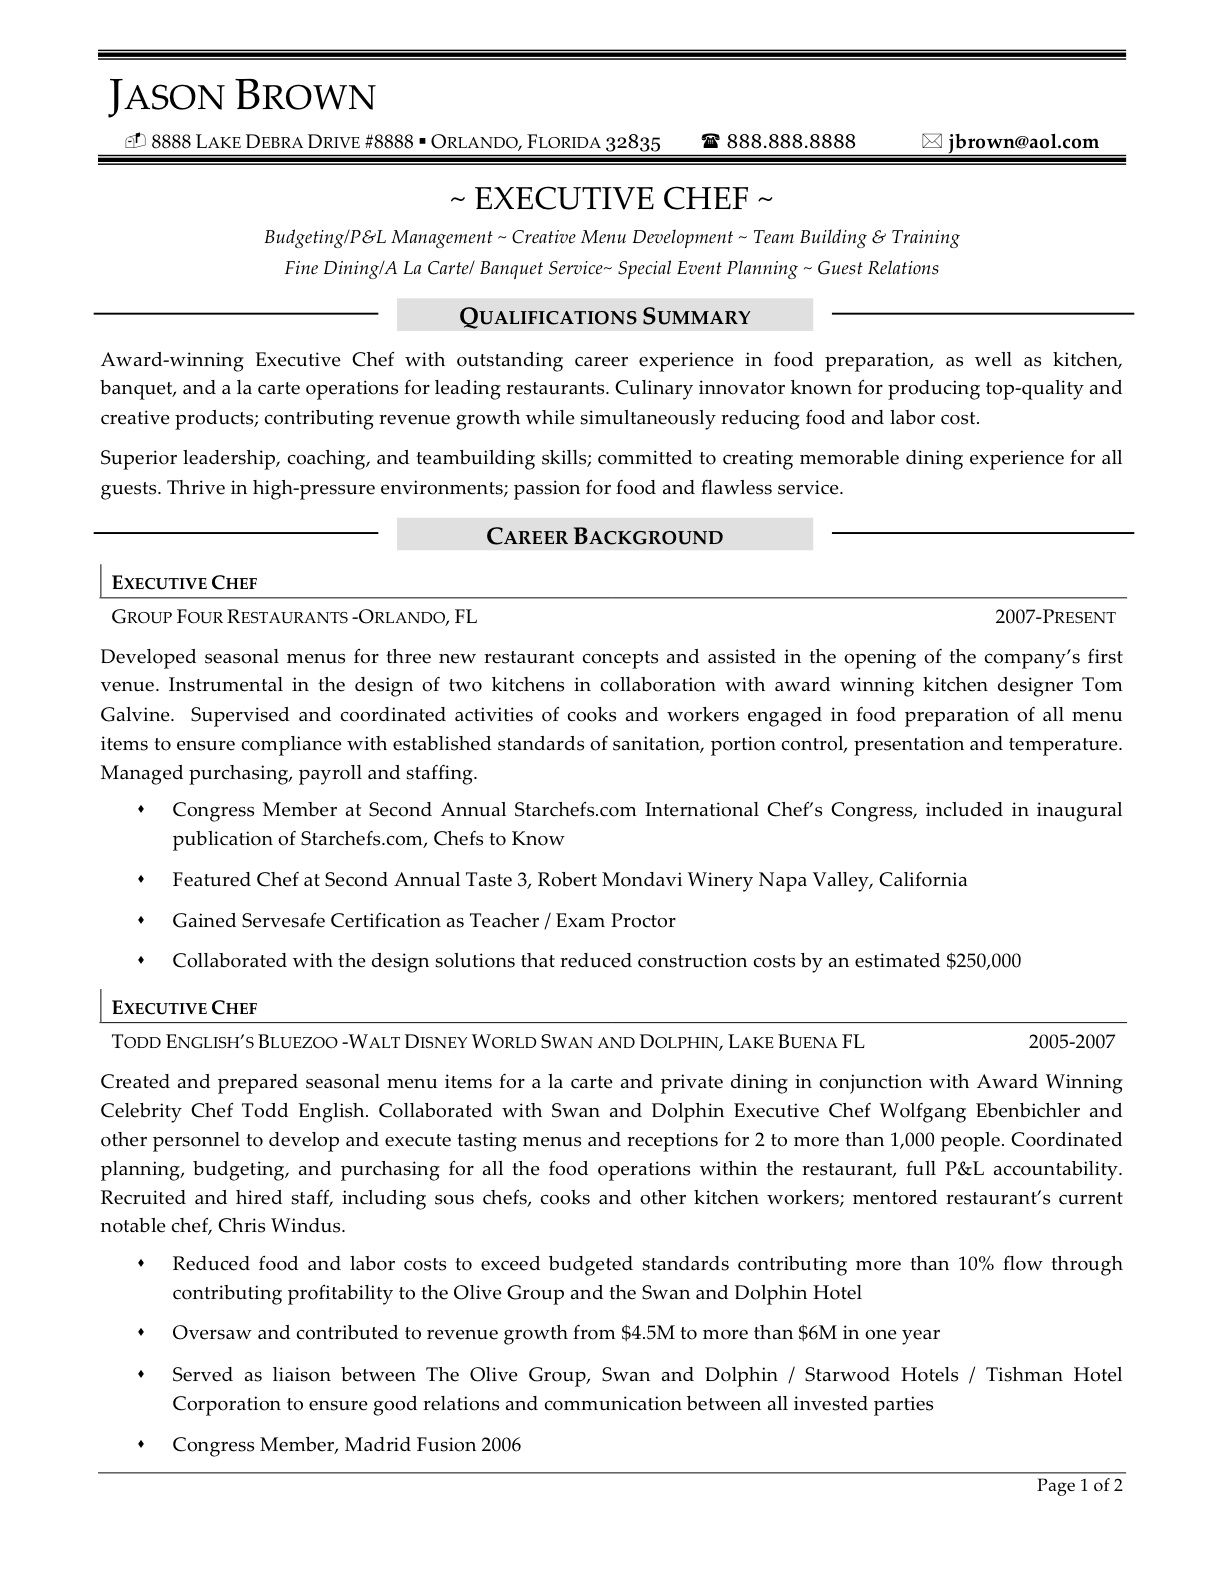 executive chef resume  sample